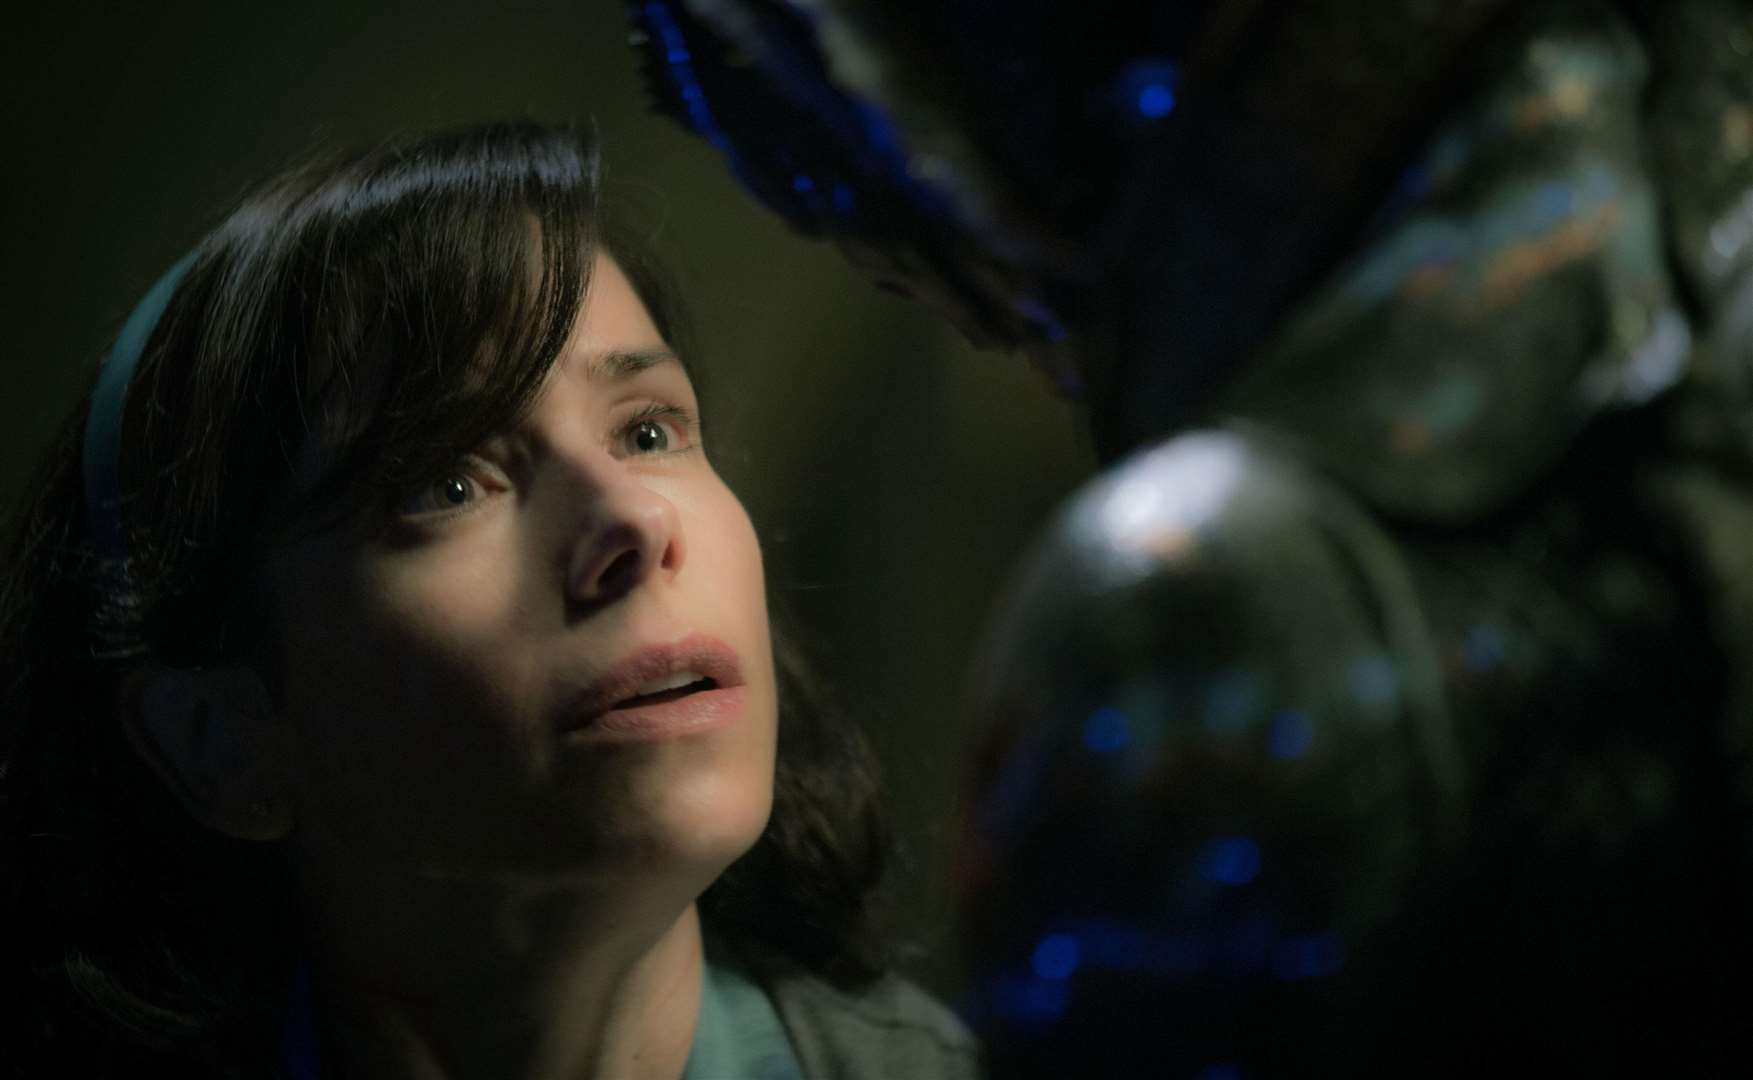 Sally Hawkins as Elisa Esposito and Doug Jones as the creature in The Shape of Water. Picture: PA Photo/Twentieth Century Fox Film Corporation/Kerry Hayes